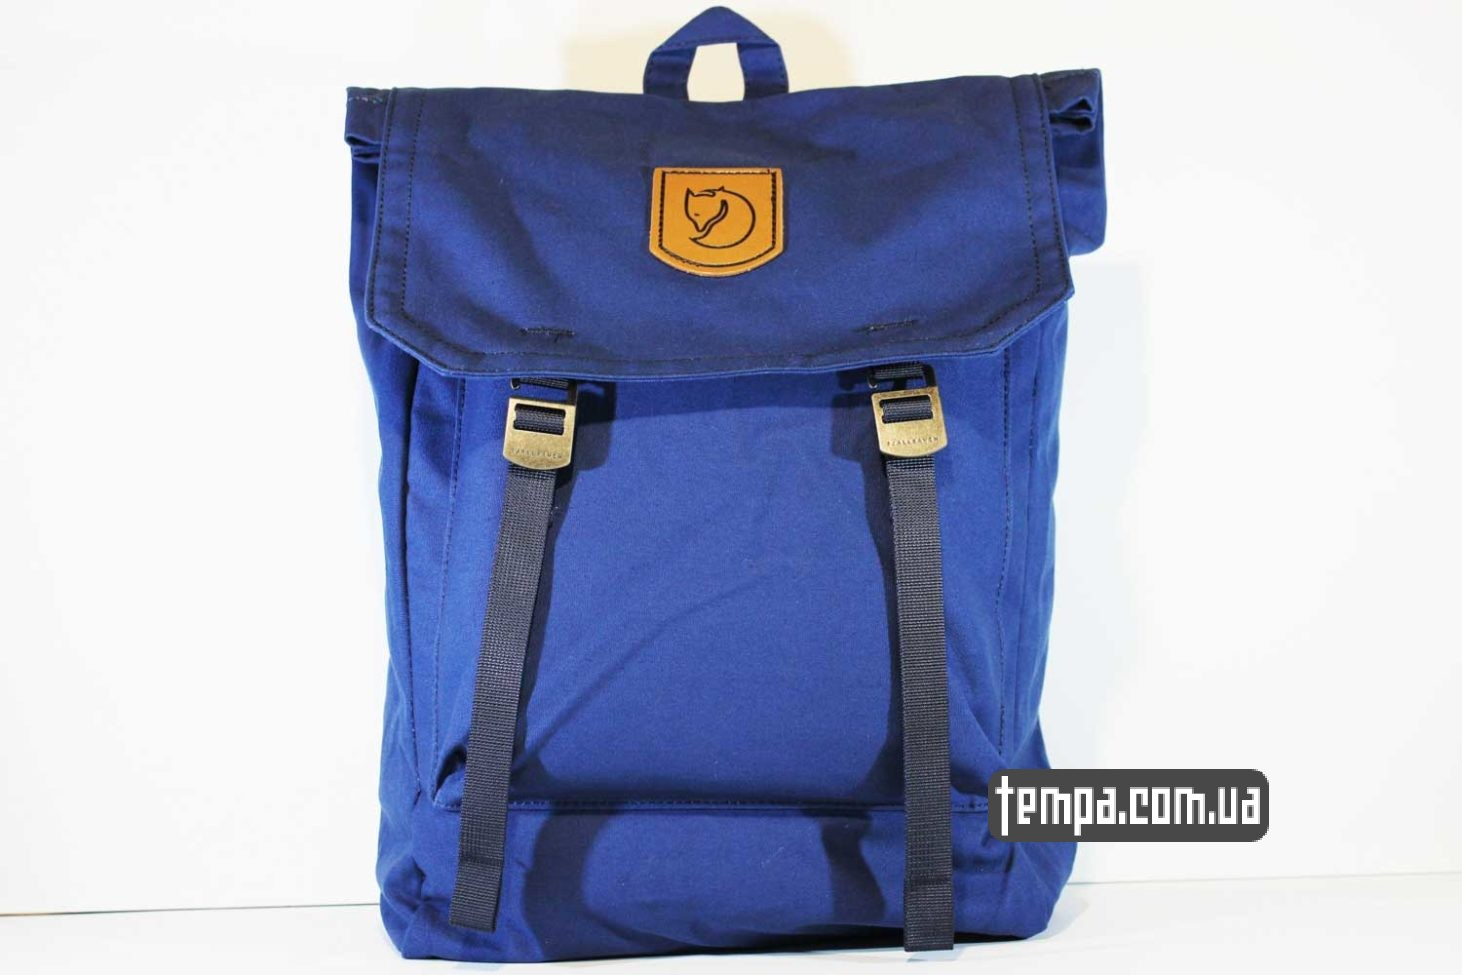 синий рюкзак сумка Fjallraven Foldsack No.1 Backpack